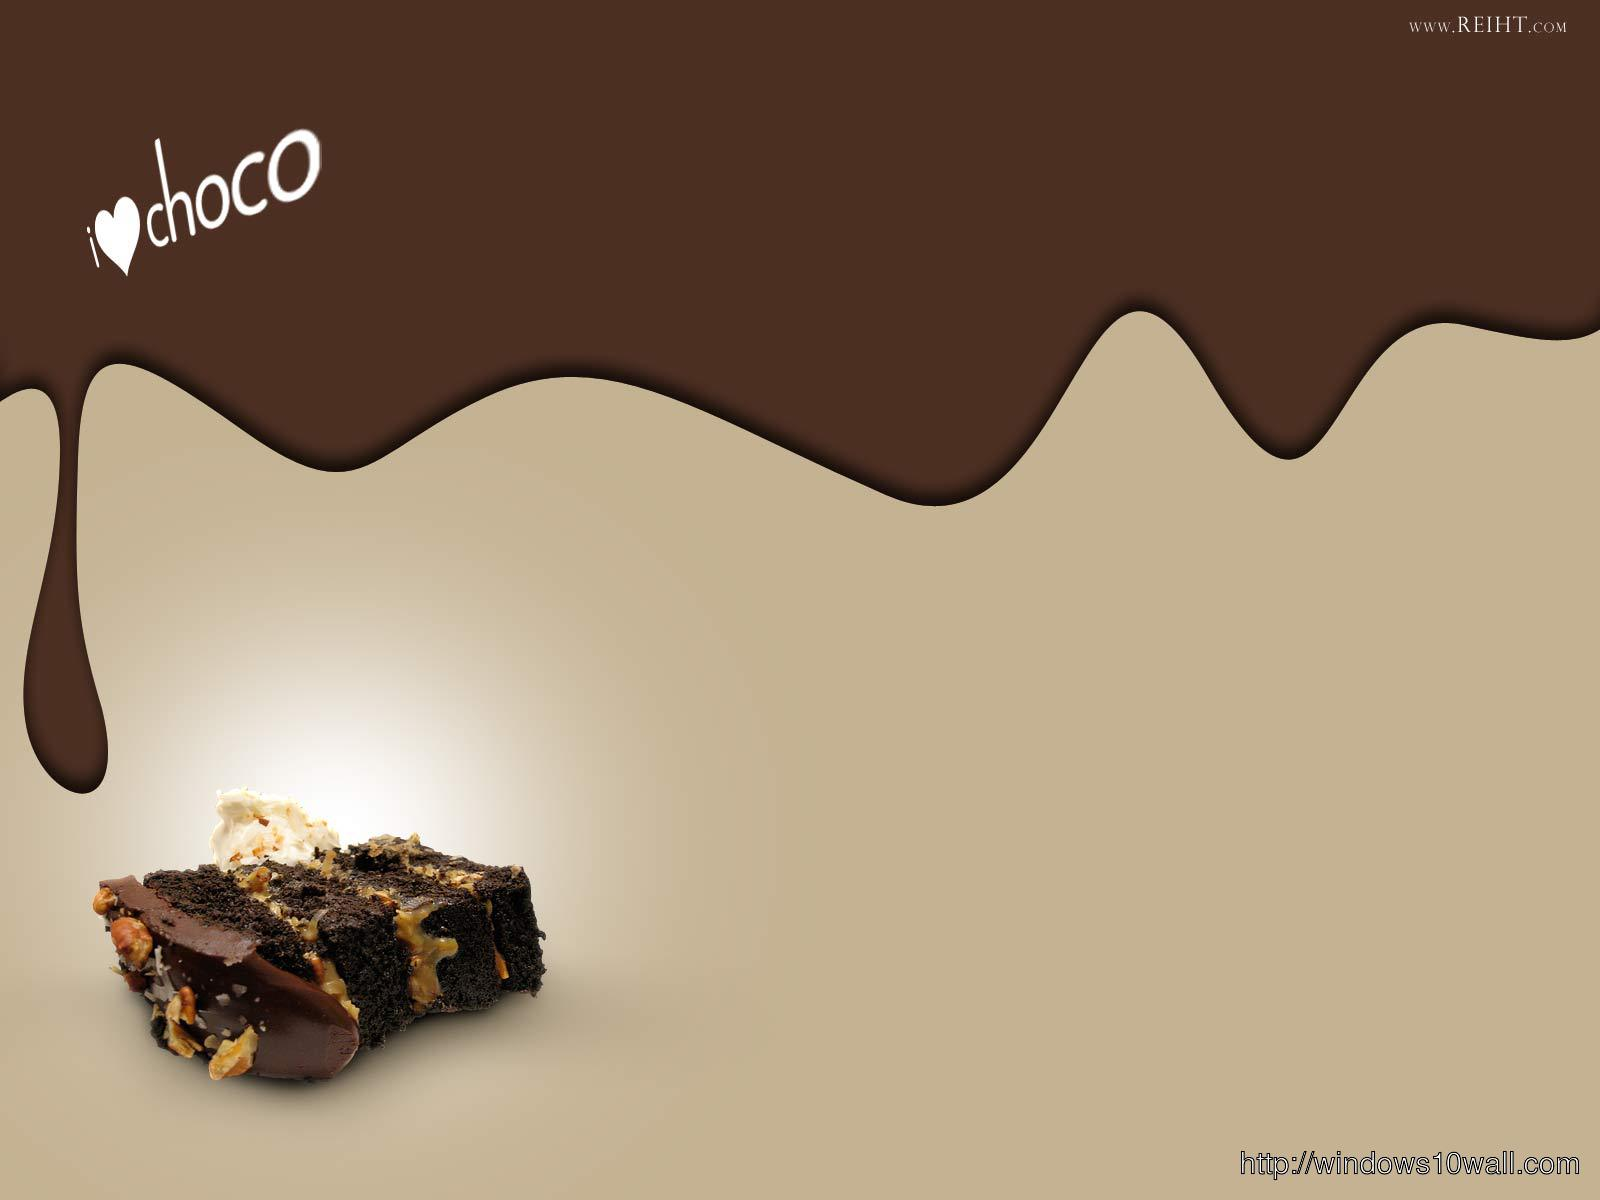 Brown Chocolate Background Wallpaper